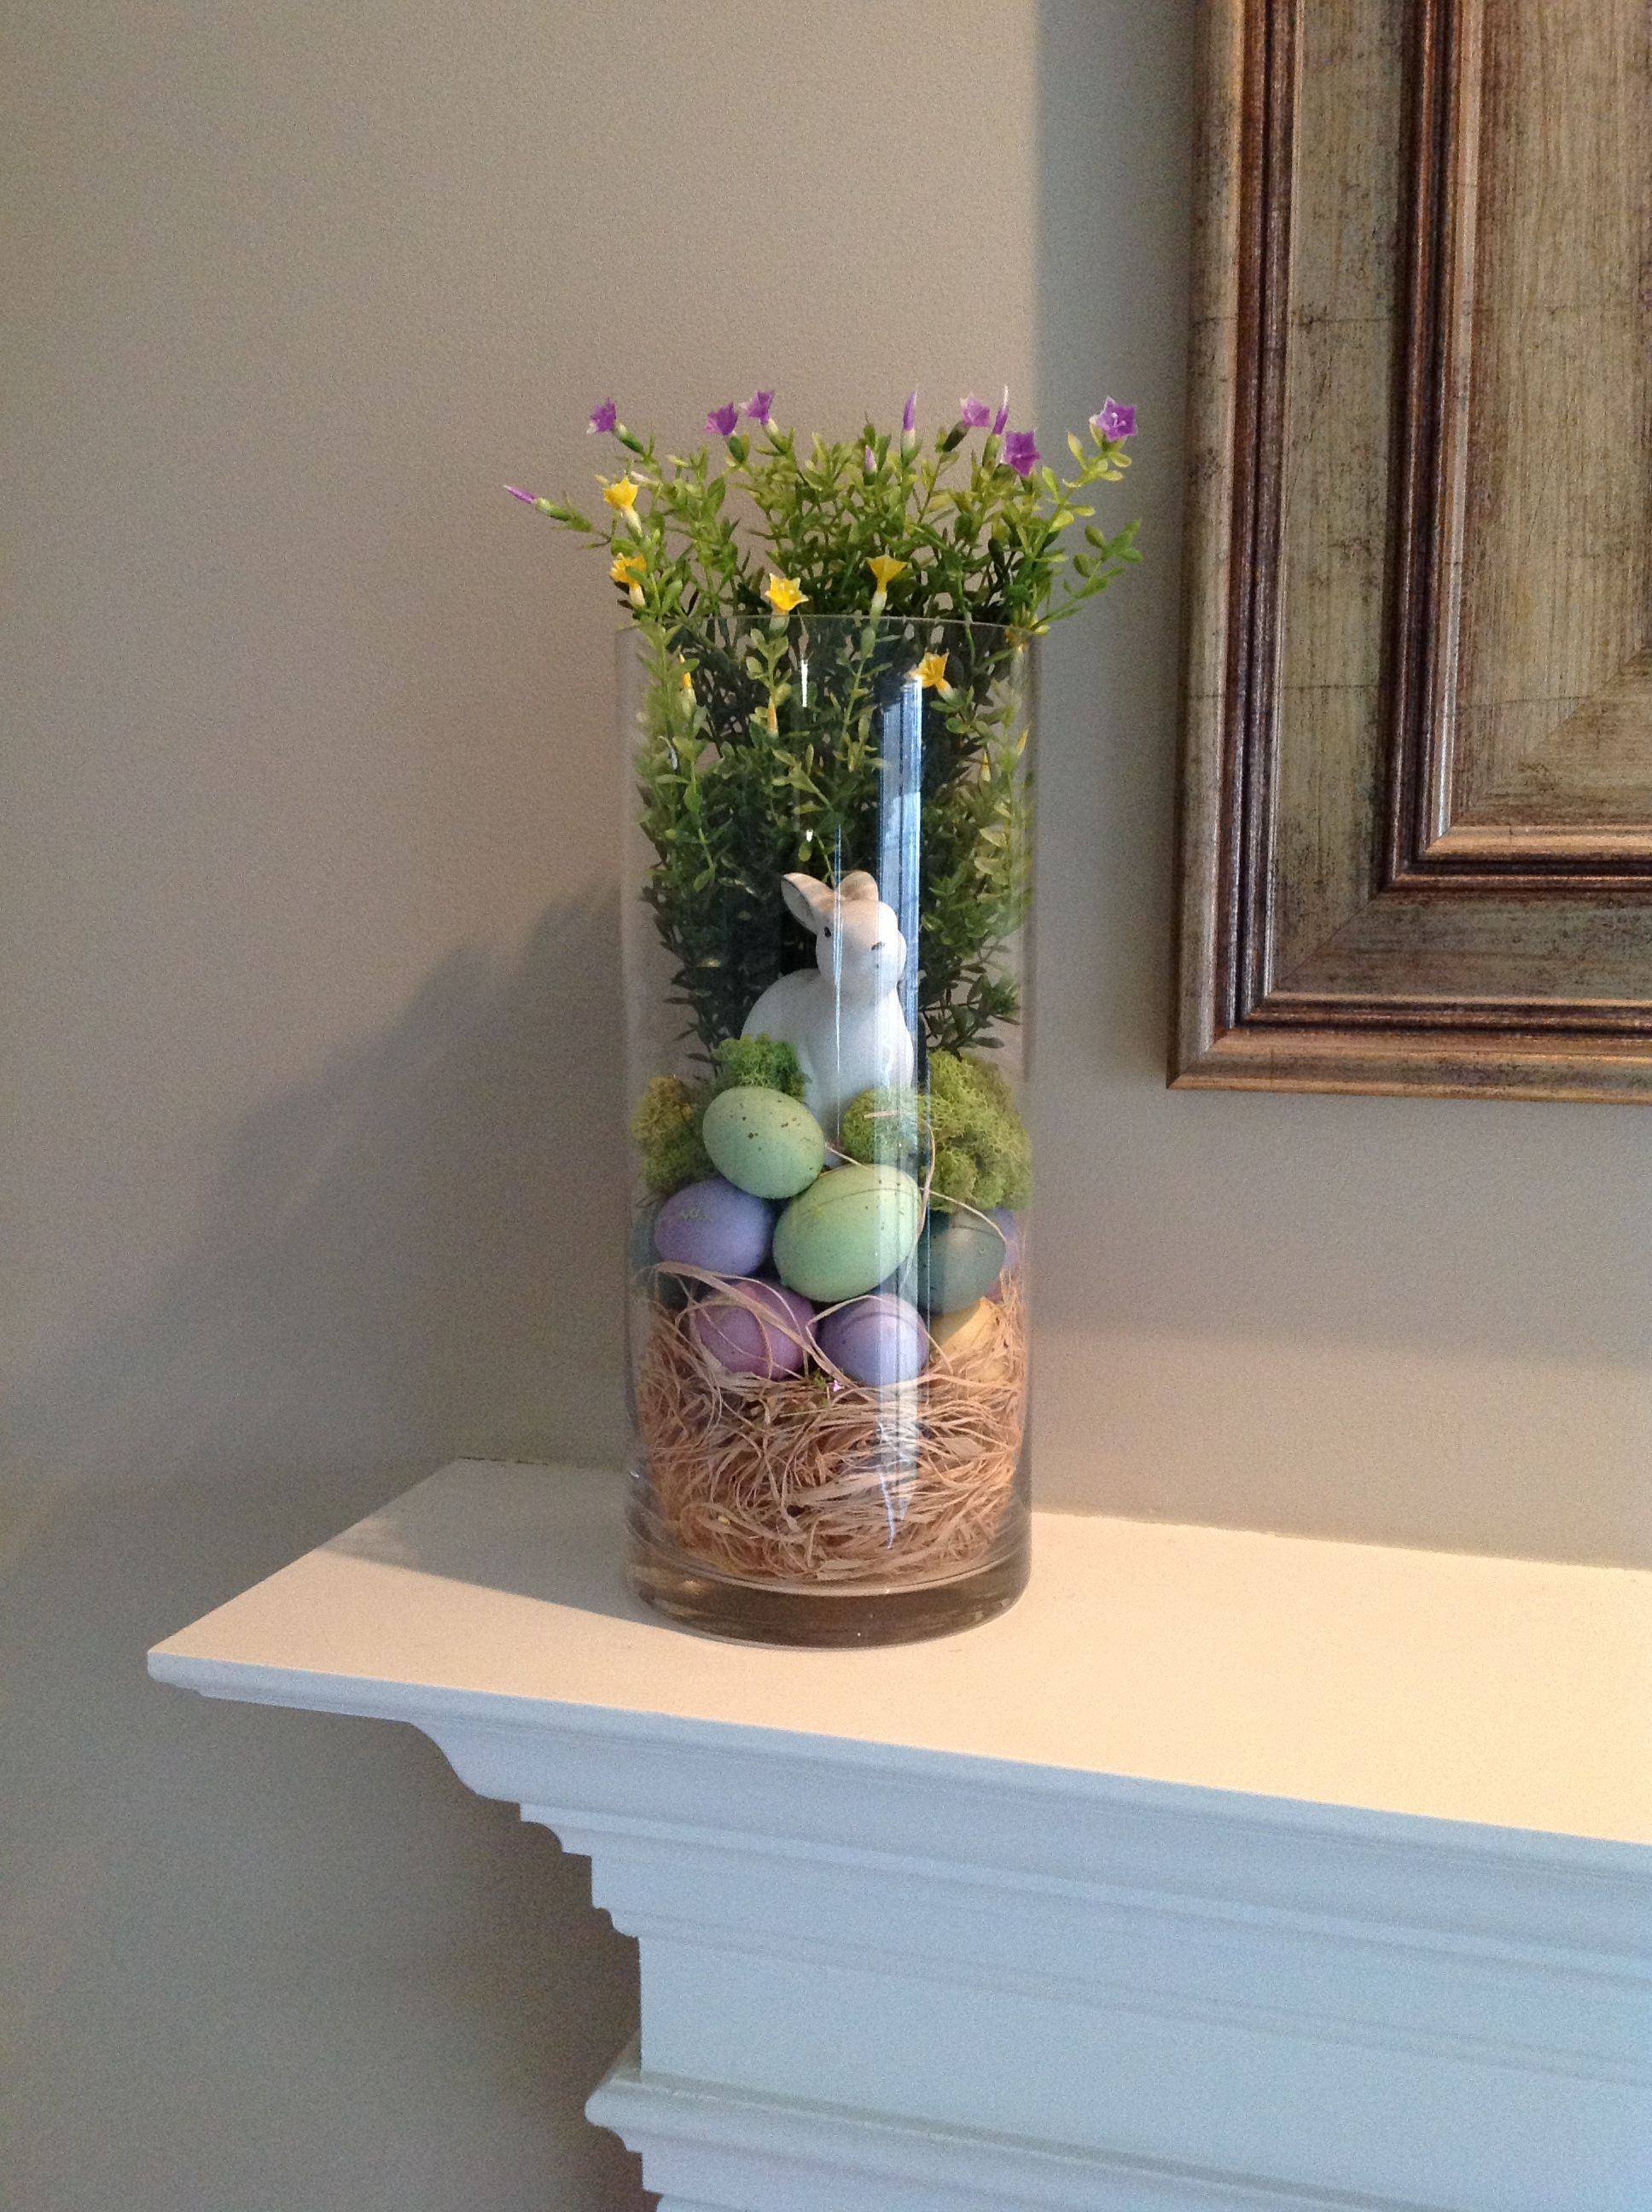 Flower Vase Filler Ideas Of Hurricane Glass Vase Filler for Spring and Easter On the Mantel with Hurricane Glass Vase Filler for Spring and Easter On the Mantel Lori Lubker Pin Easter Hurricane Rabbit